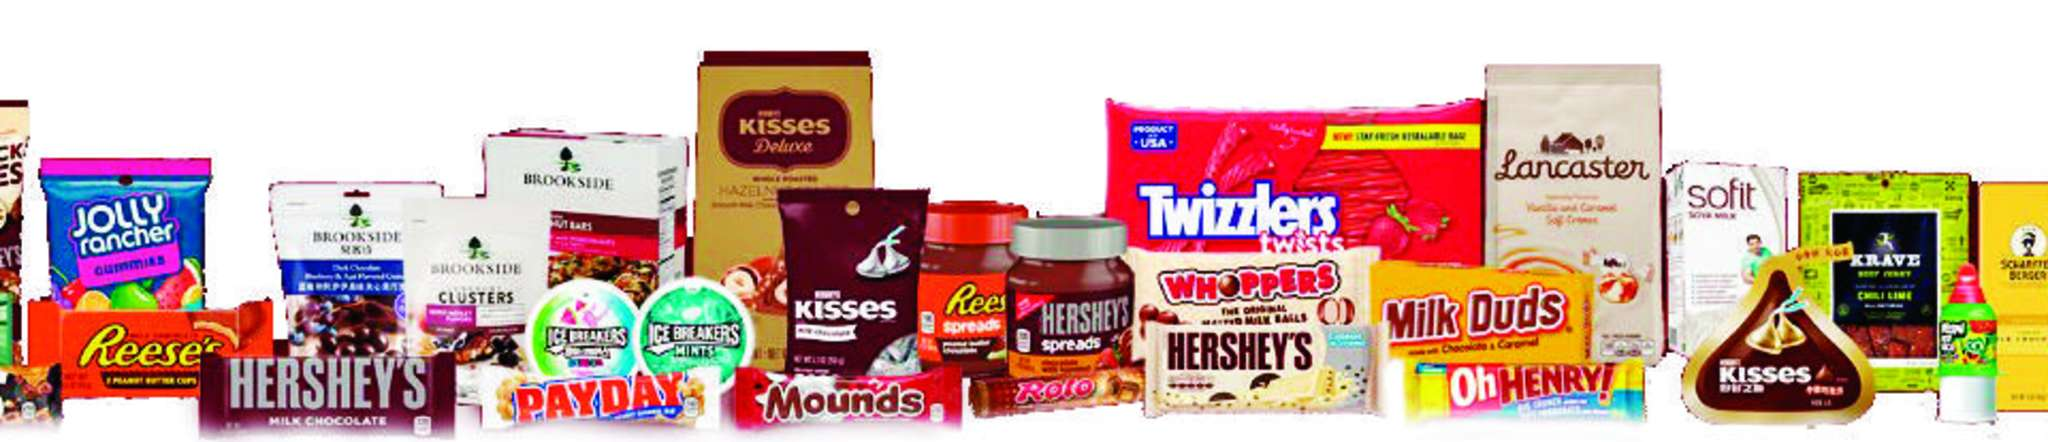 Selection of Hershey food products.